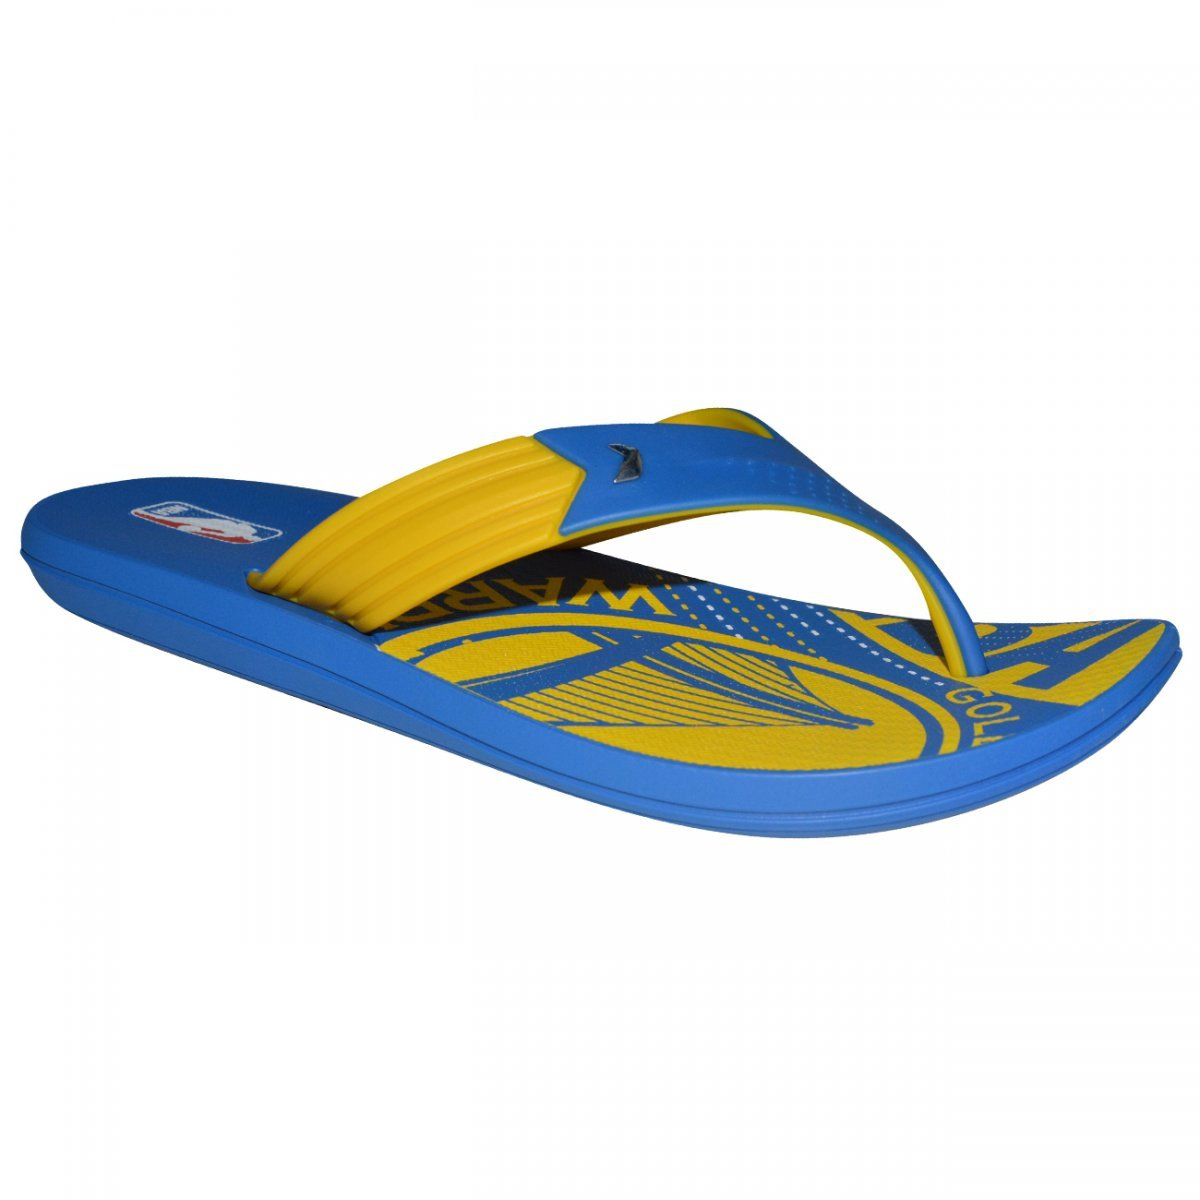 Azul Chinelo Azul Rider NBA Rider NBA Double Chinelo Double NBA Chinelo Rider Double qAF0AT